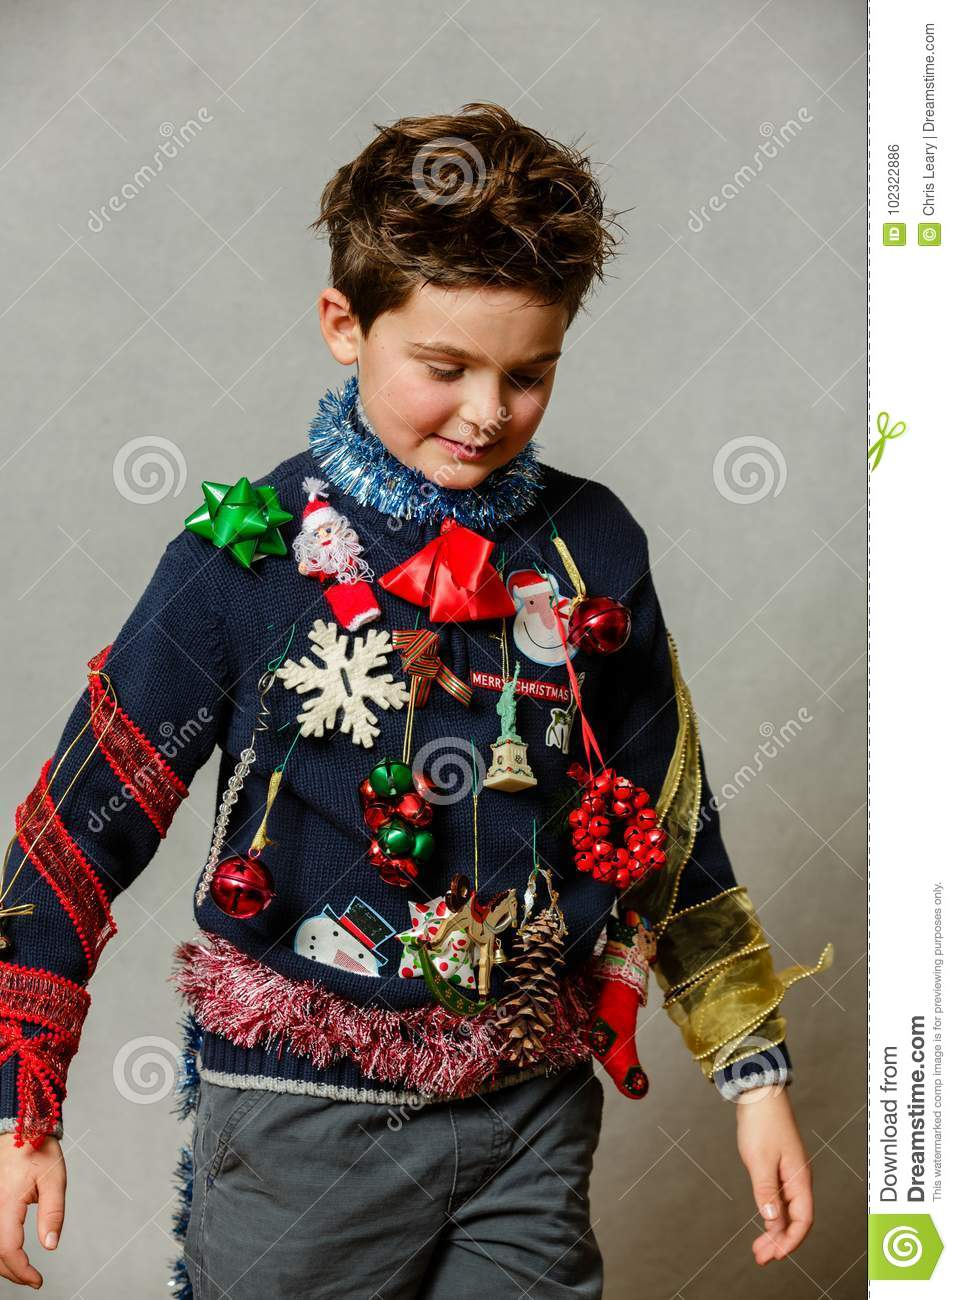 download homemade ugly christmas sweater stock photo image of sweater face 102322886 - Homemade Ugly Christmas Sweater